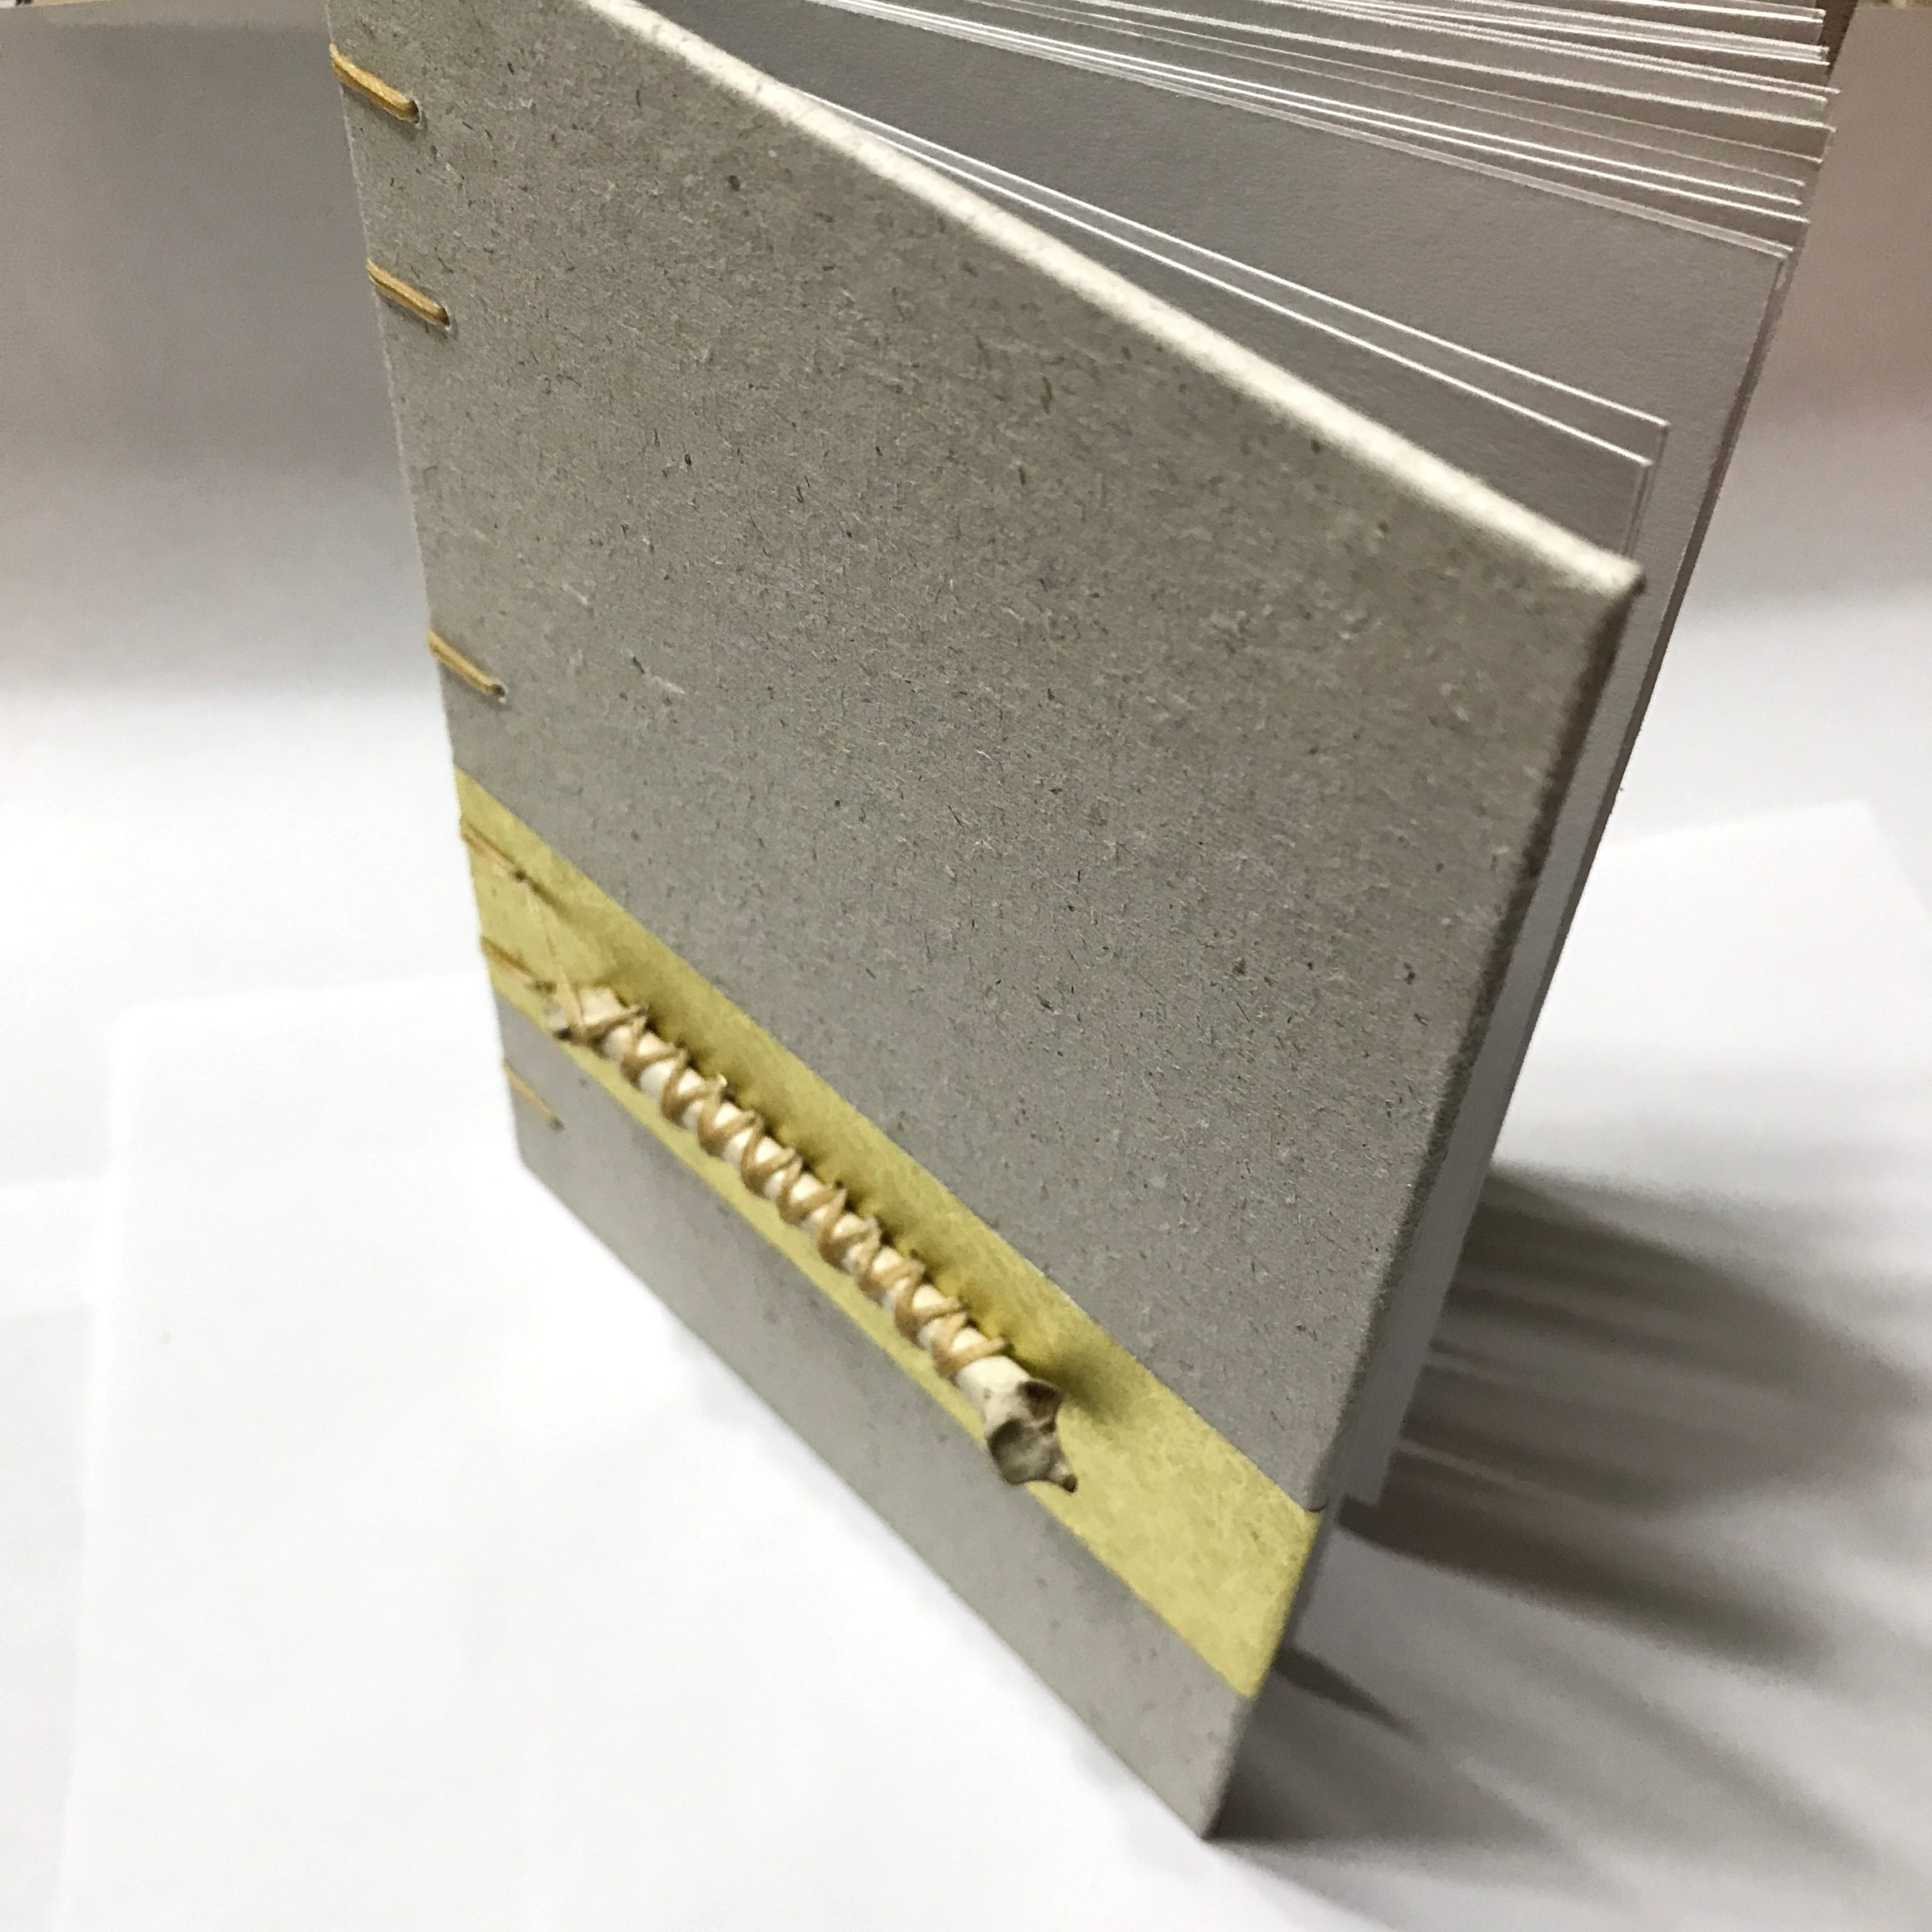 Full view of sketchbook with bone stitched on cover